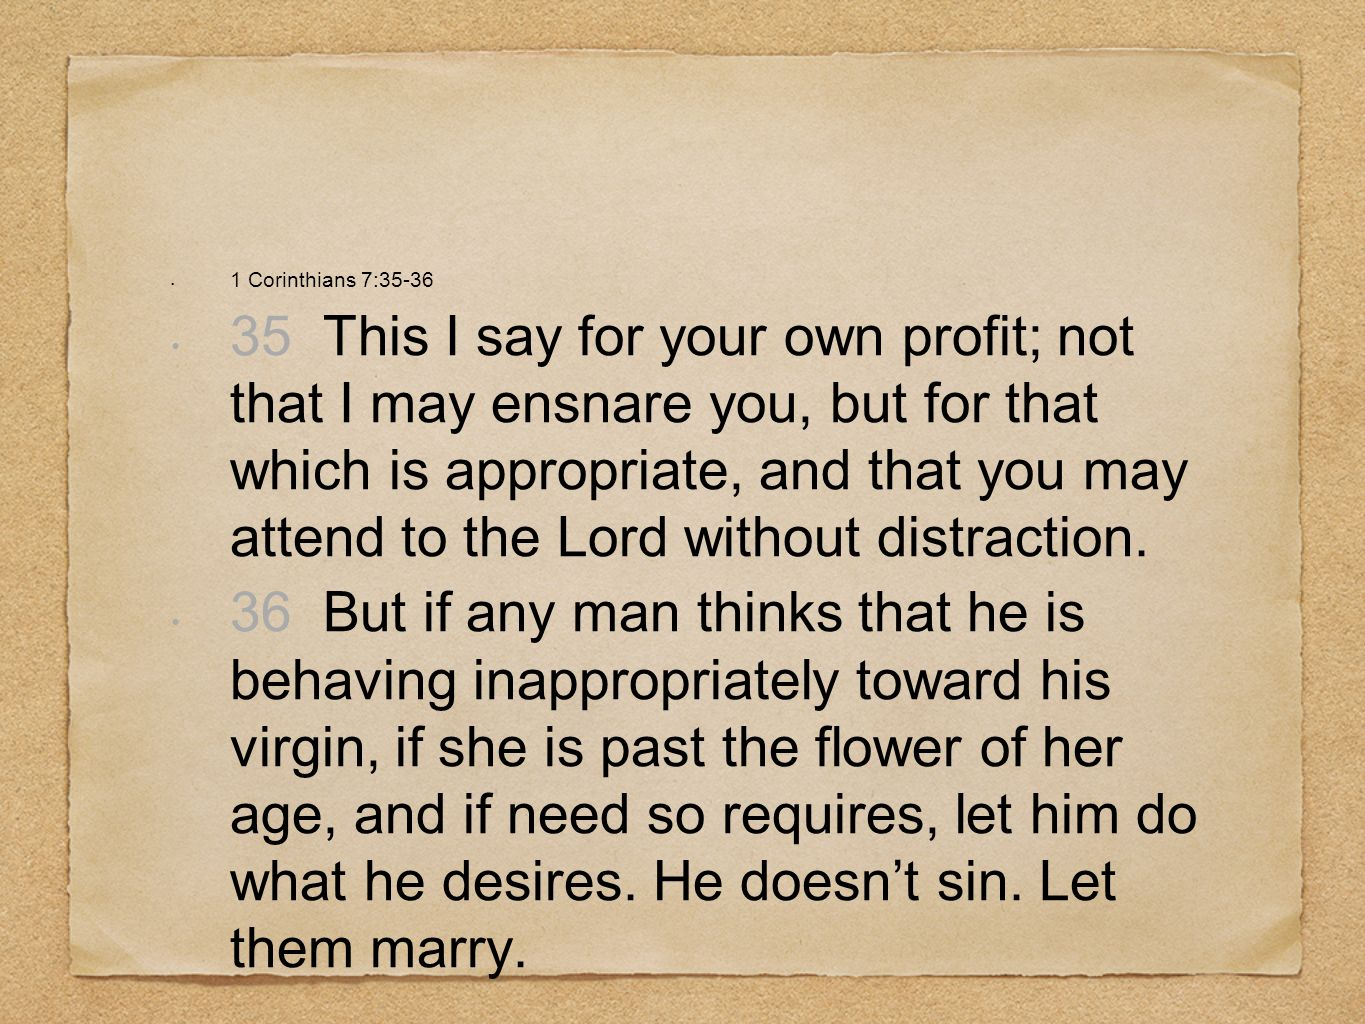 1 Corinthians 7:35-36 35 This I say for your own profit; not that I may ensnare you, but for that which is appropriate, and that you may attend to the